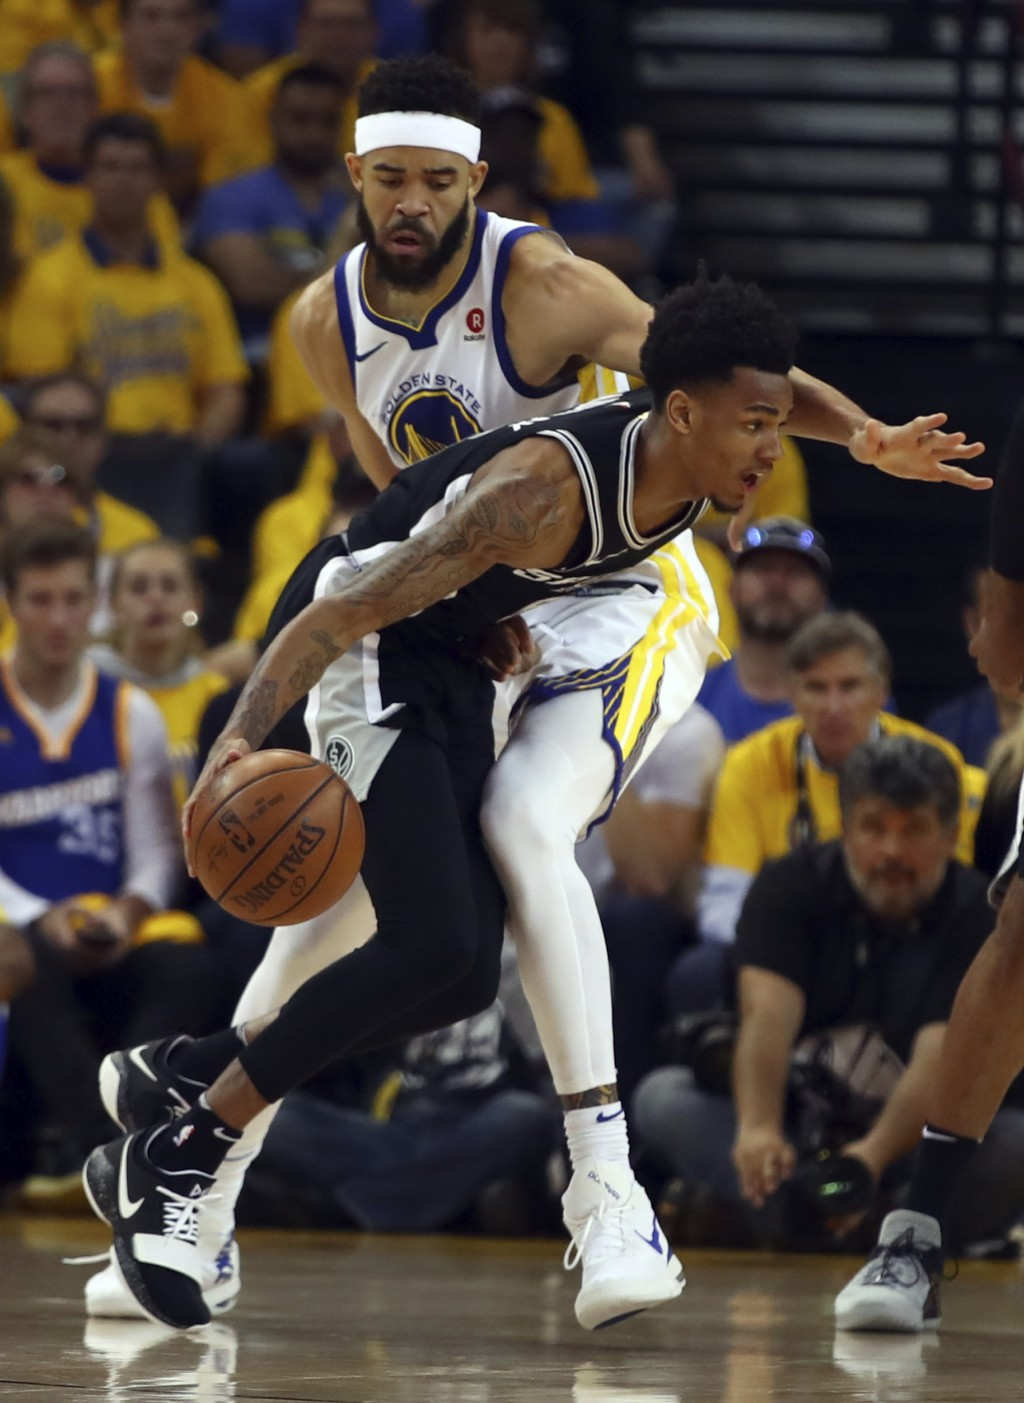 San Antonio Spurs' Dejounte Murray, right, drives the ball around Golden State Warriors' JaVale McGee (1) during the first half in Game 1 of a first-r